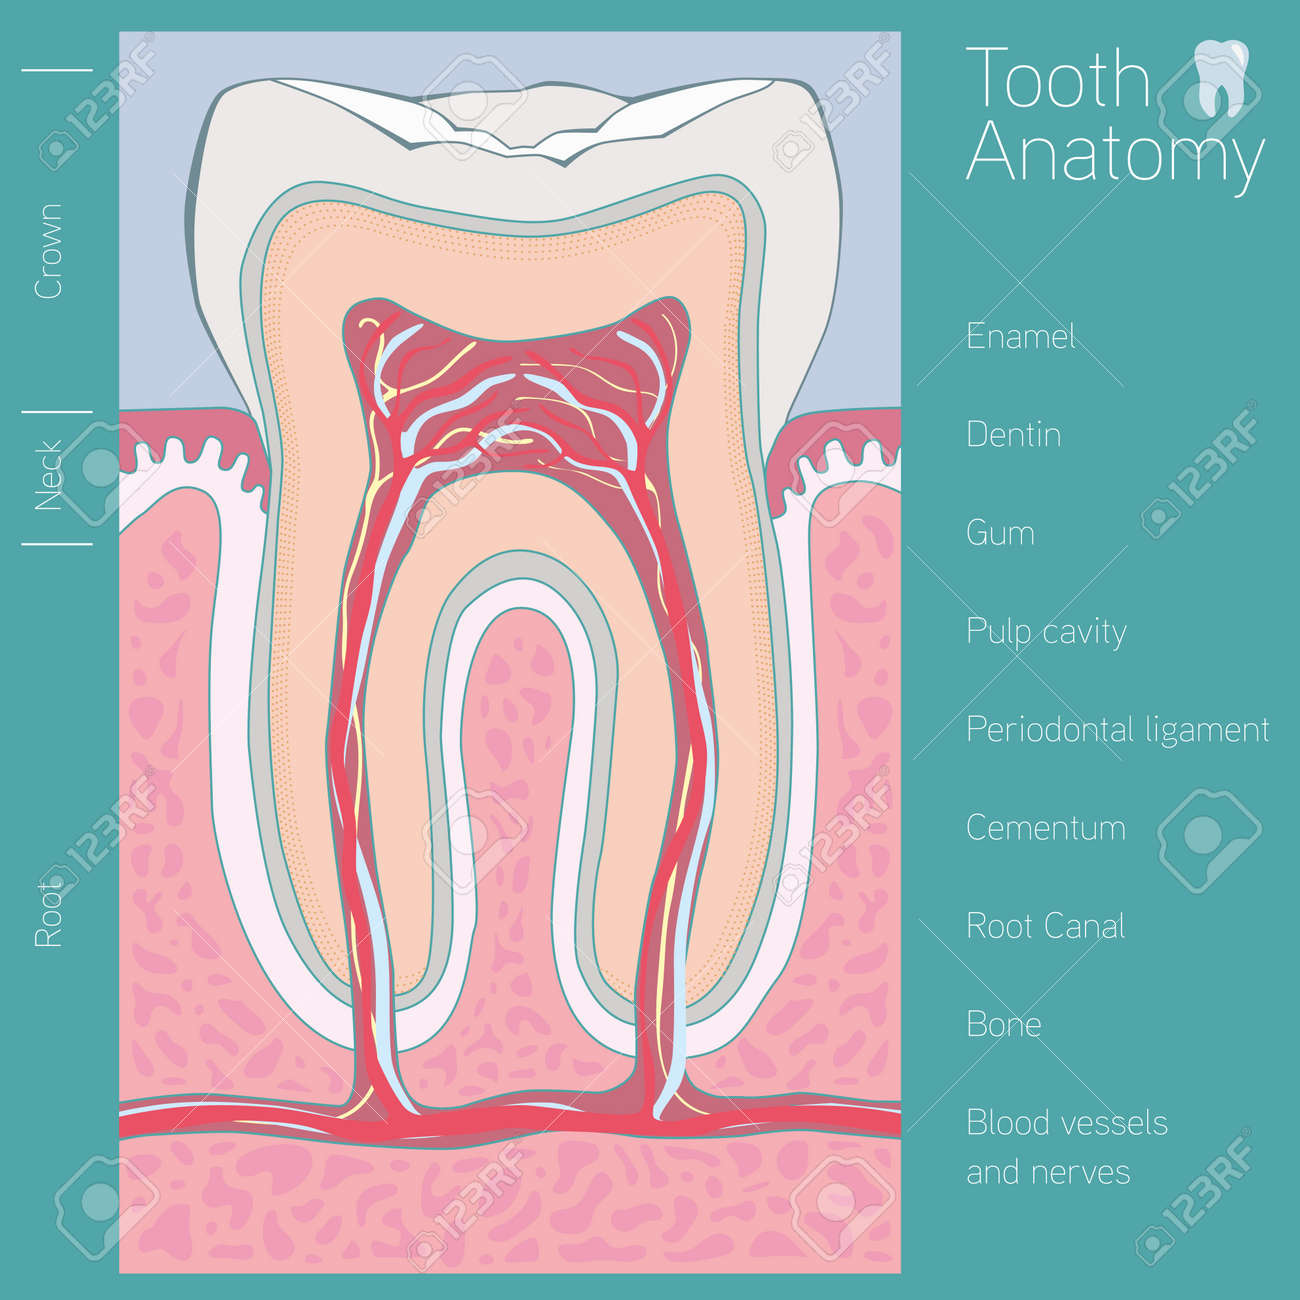 Tooth Medical Anatomy With Words Royalty Free Cliparts, Vectors, And ...